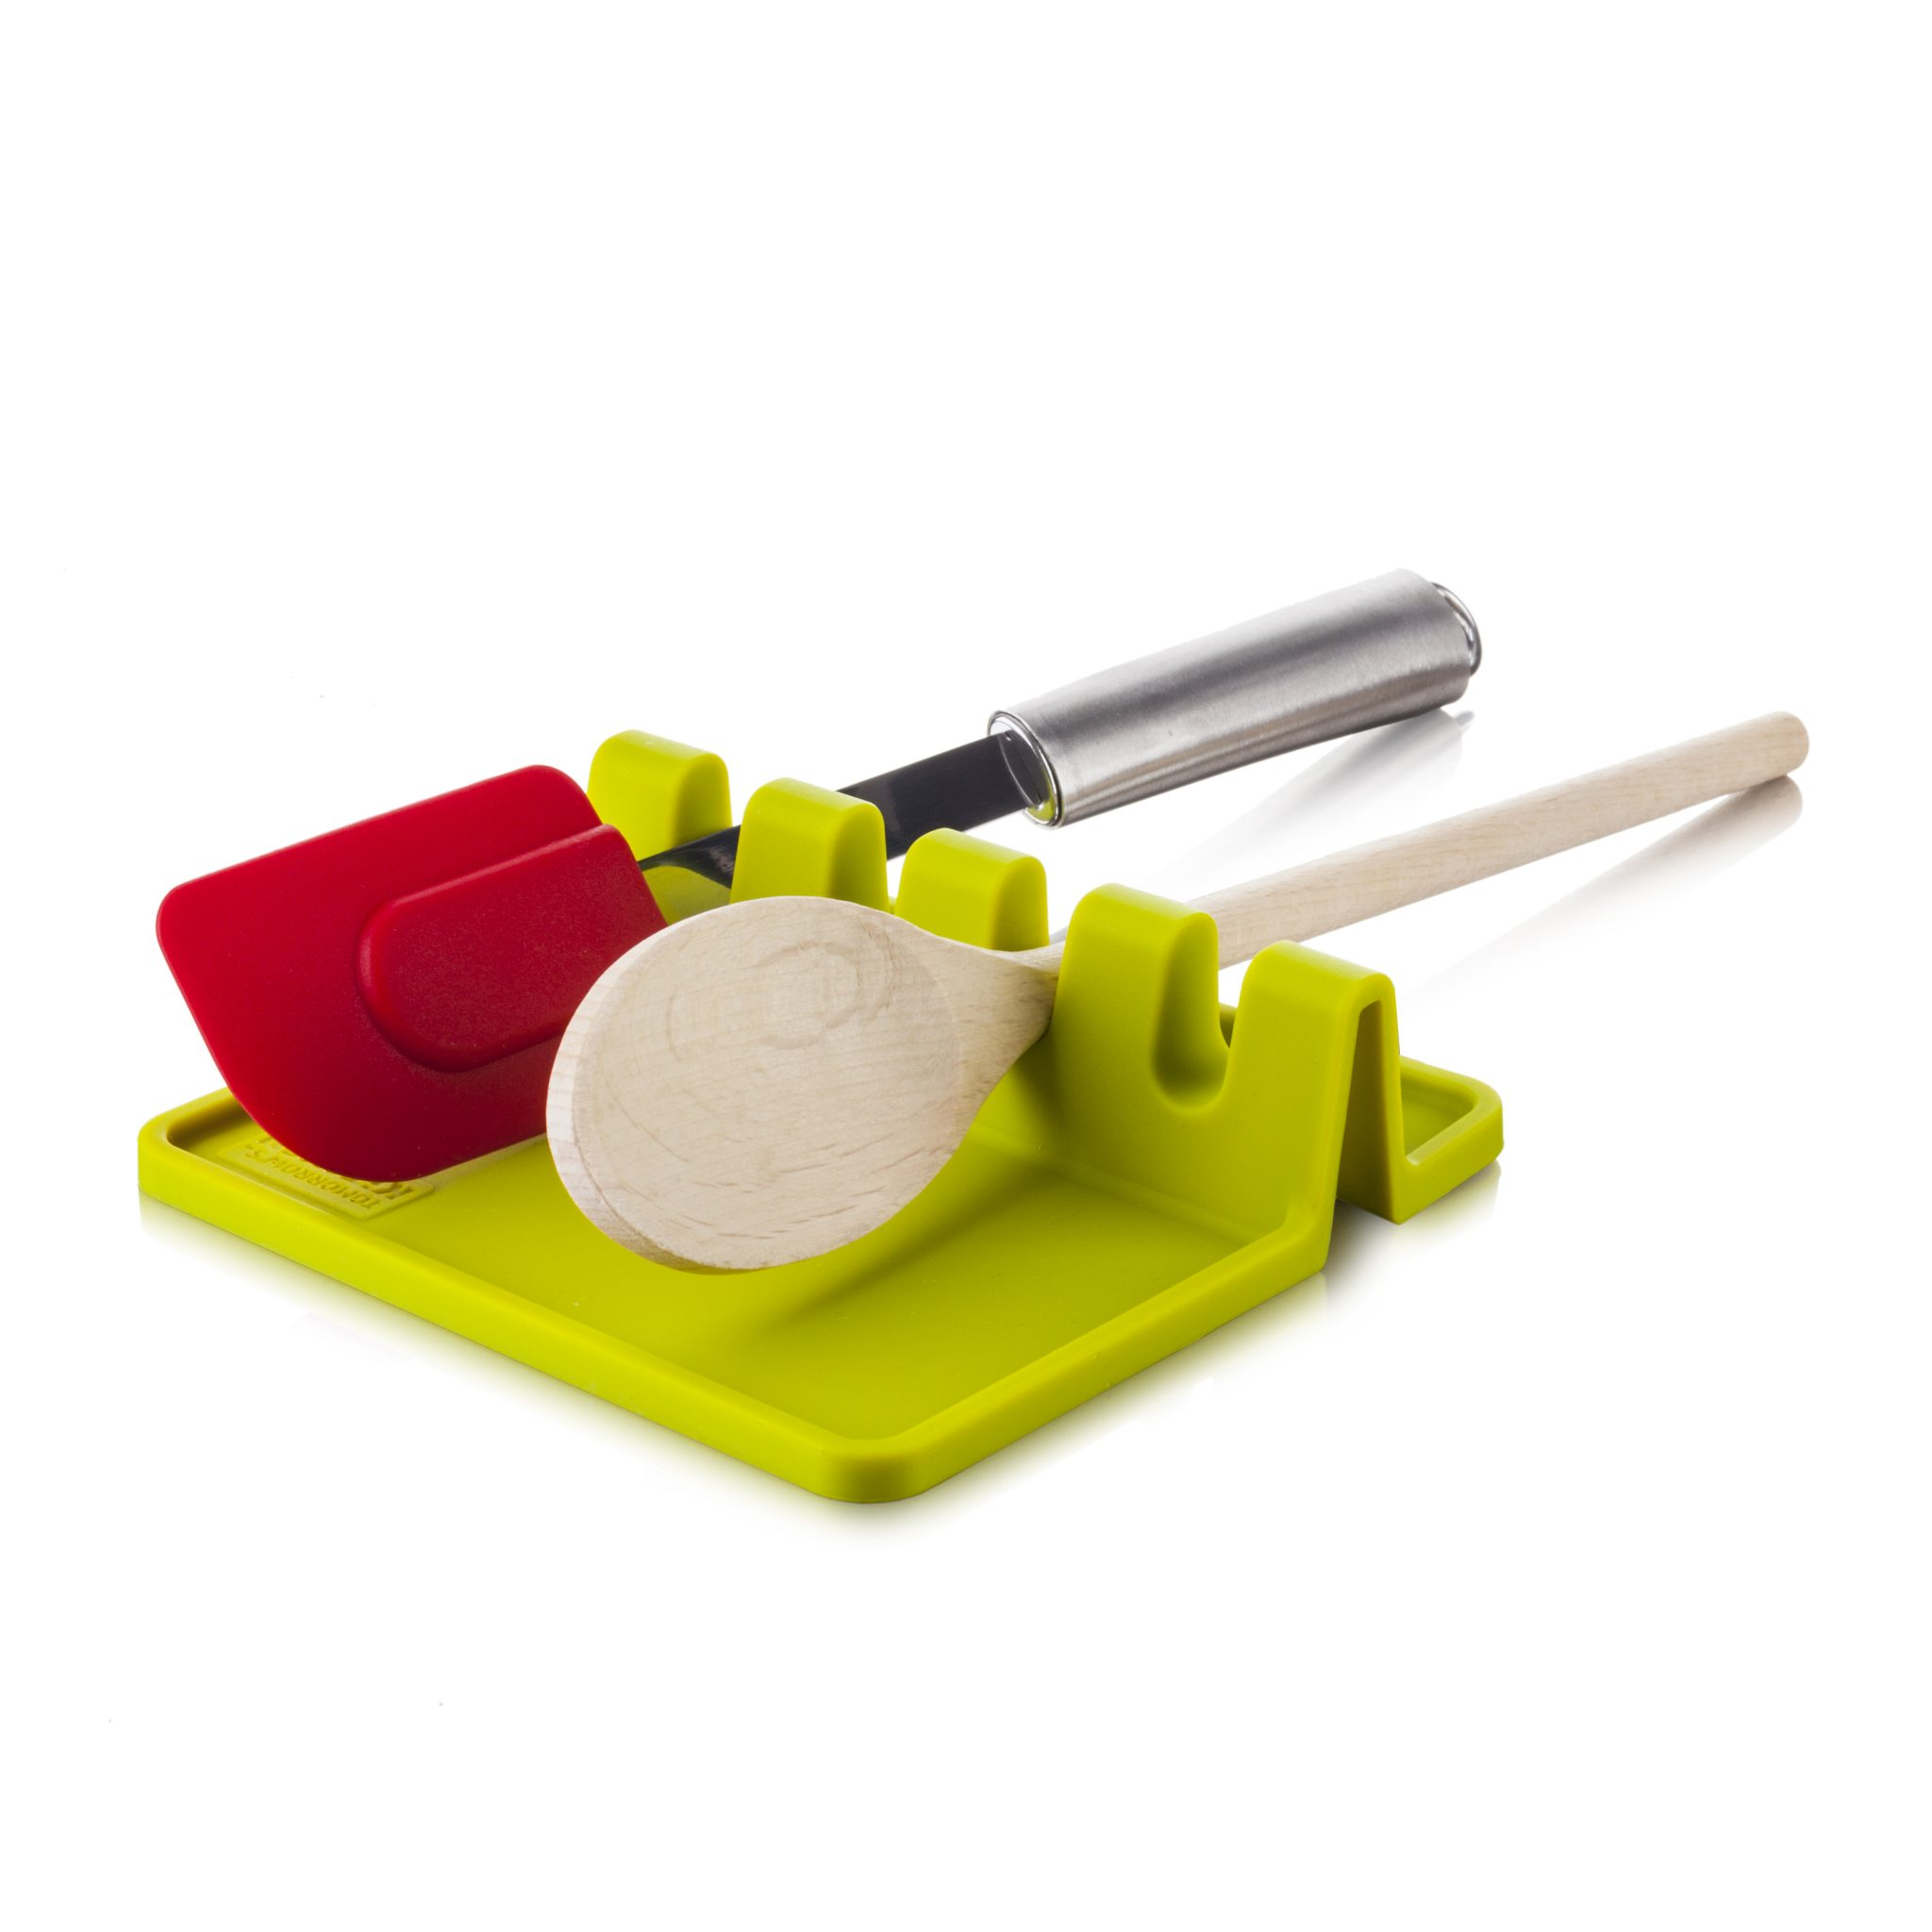 Utensil Rest Green